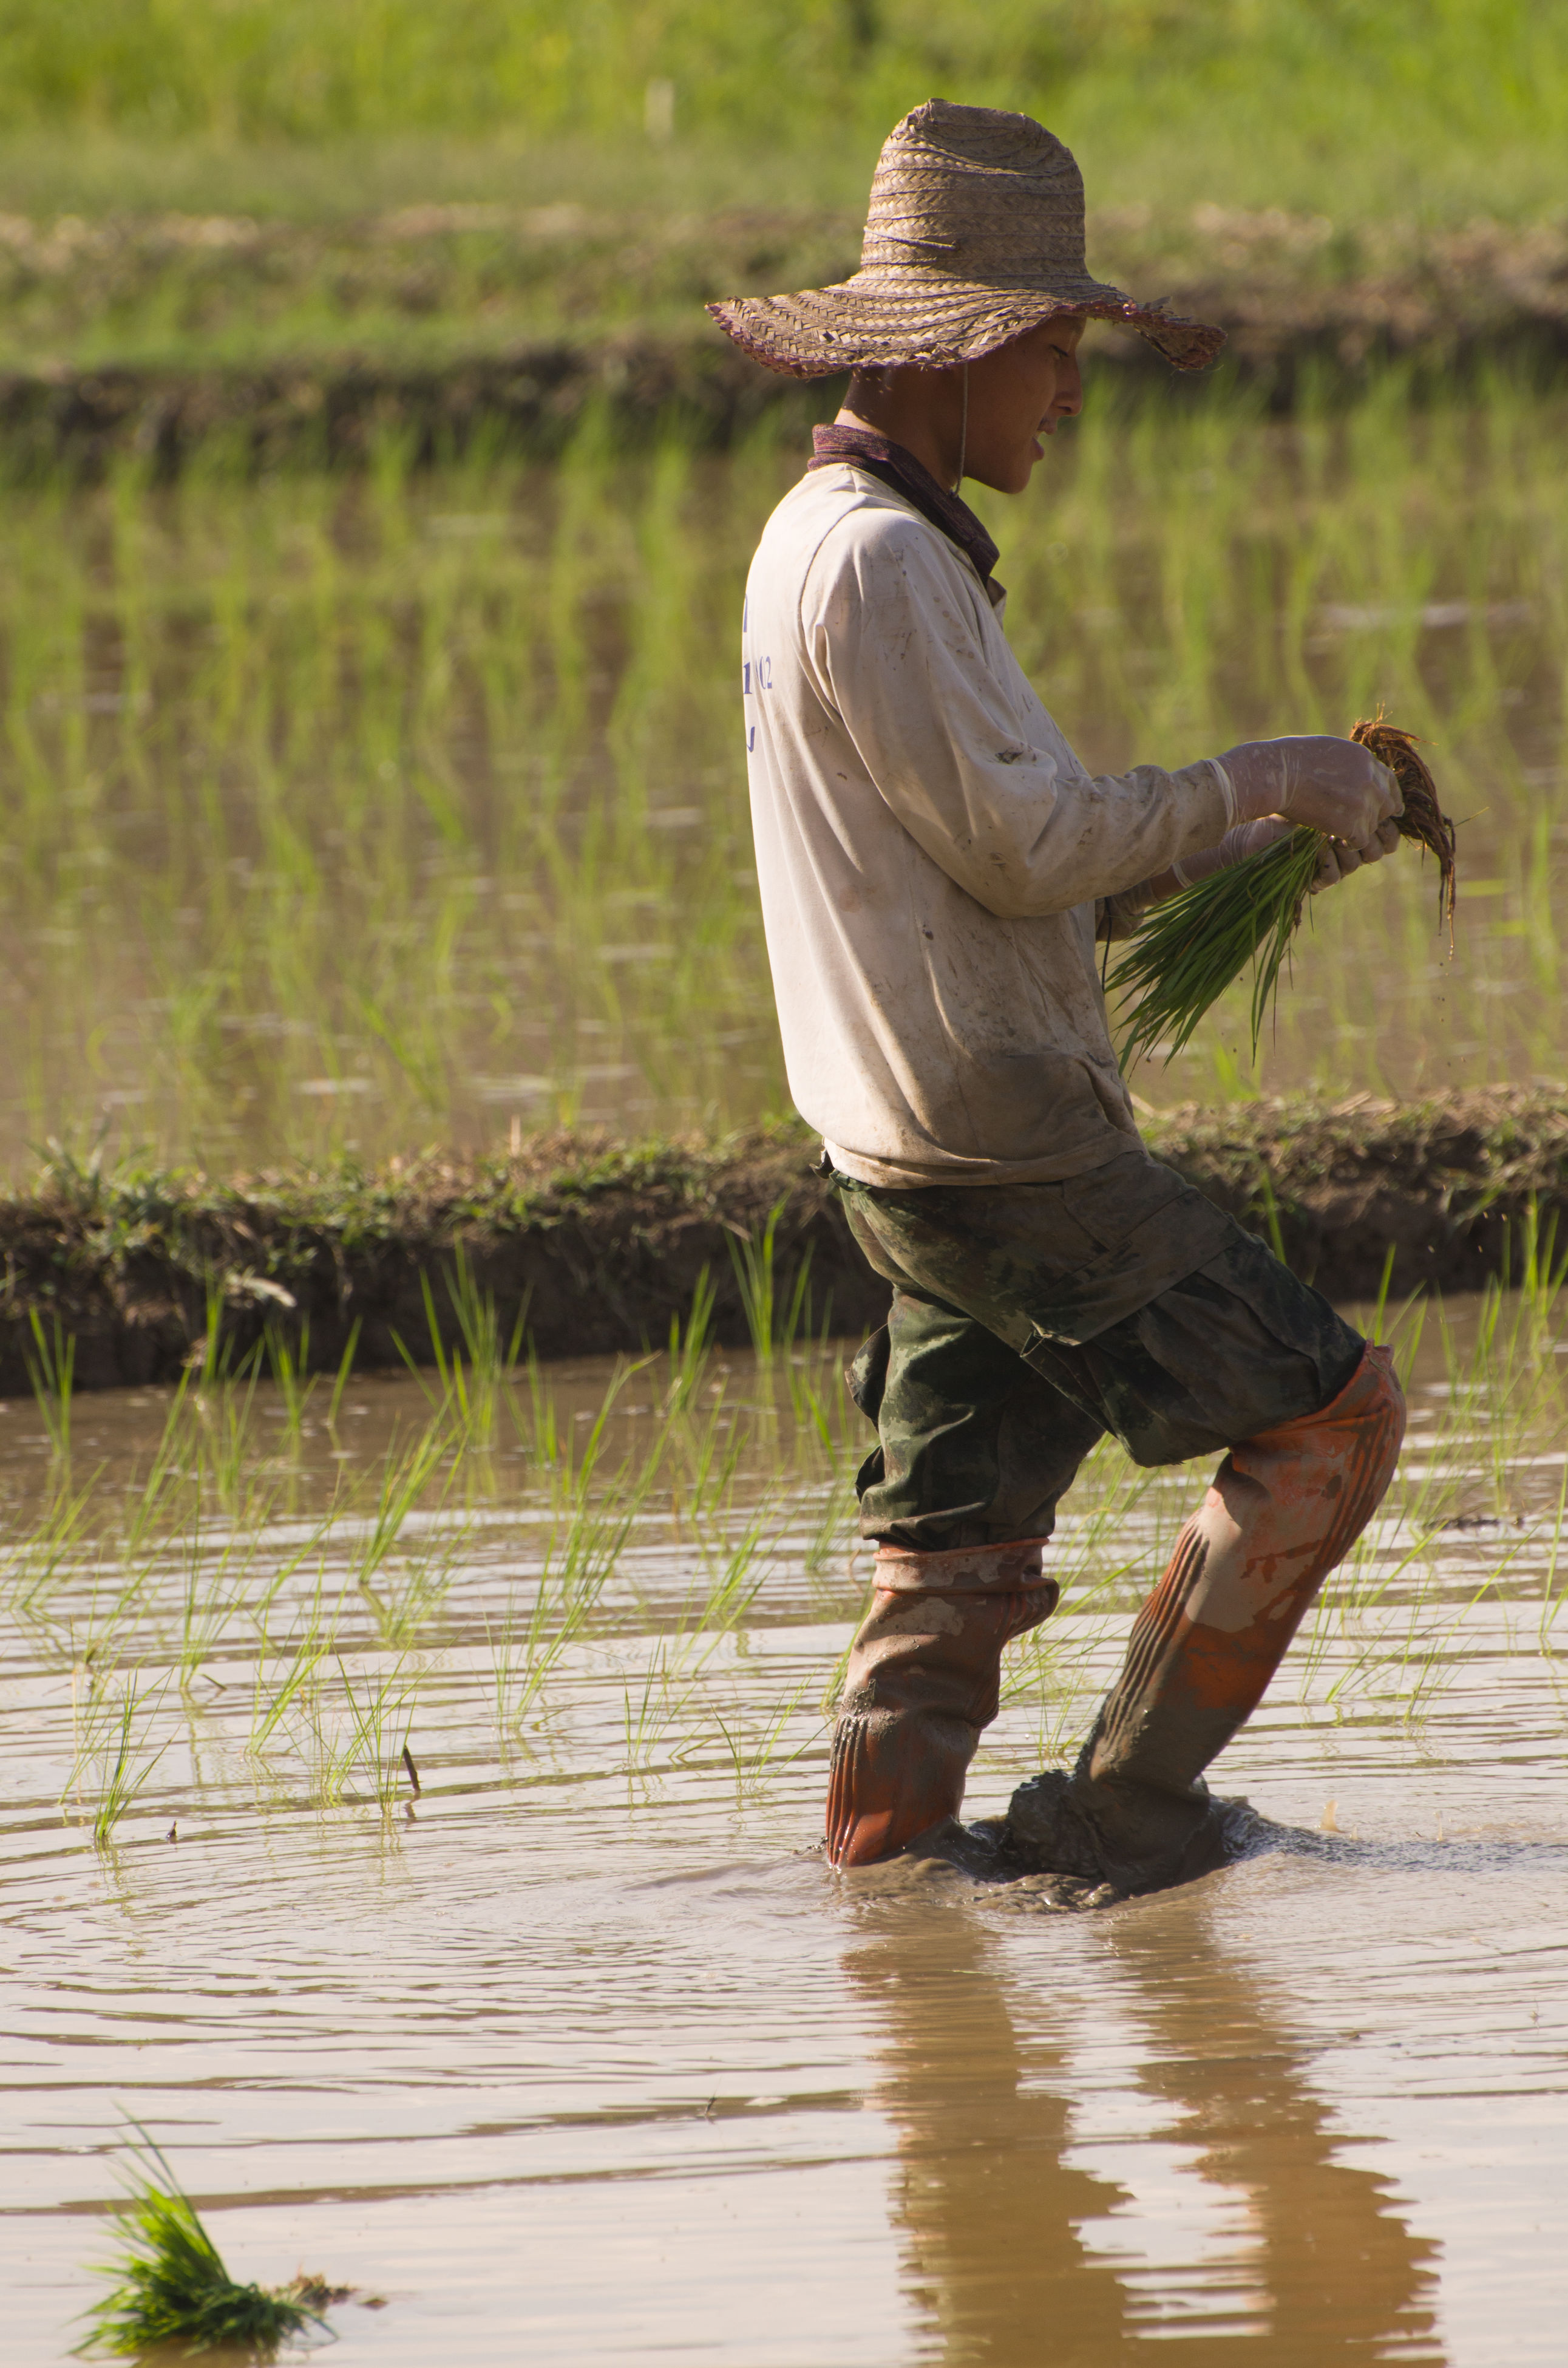 water, hat, real people, full length, outdoors, one person, nature, lake, day, asian style conical hat, men, rear view, tranquility, lifestyles, farmer, women, occupation, beauty in nature, rice paddy, working